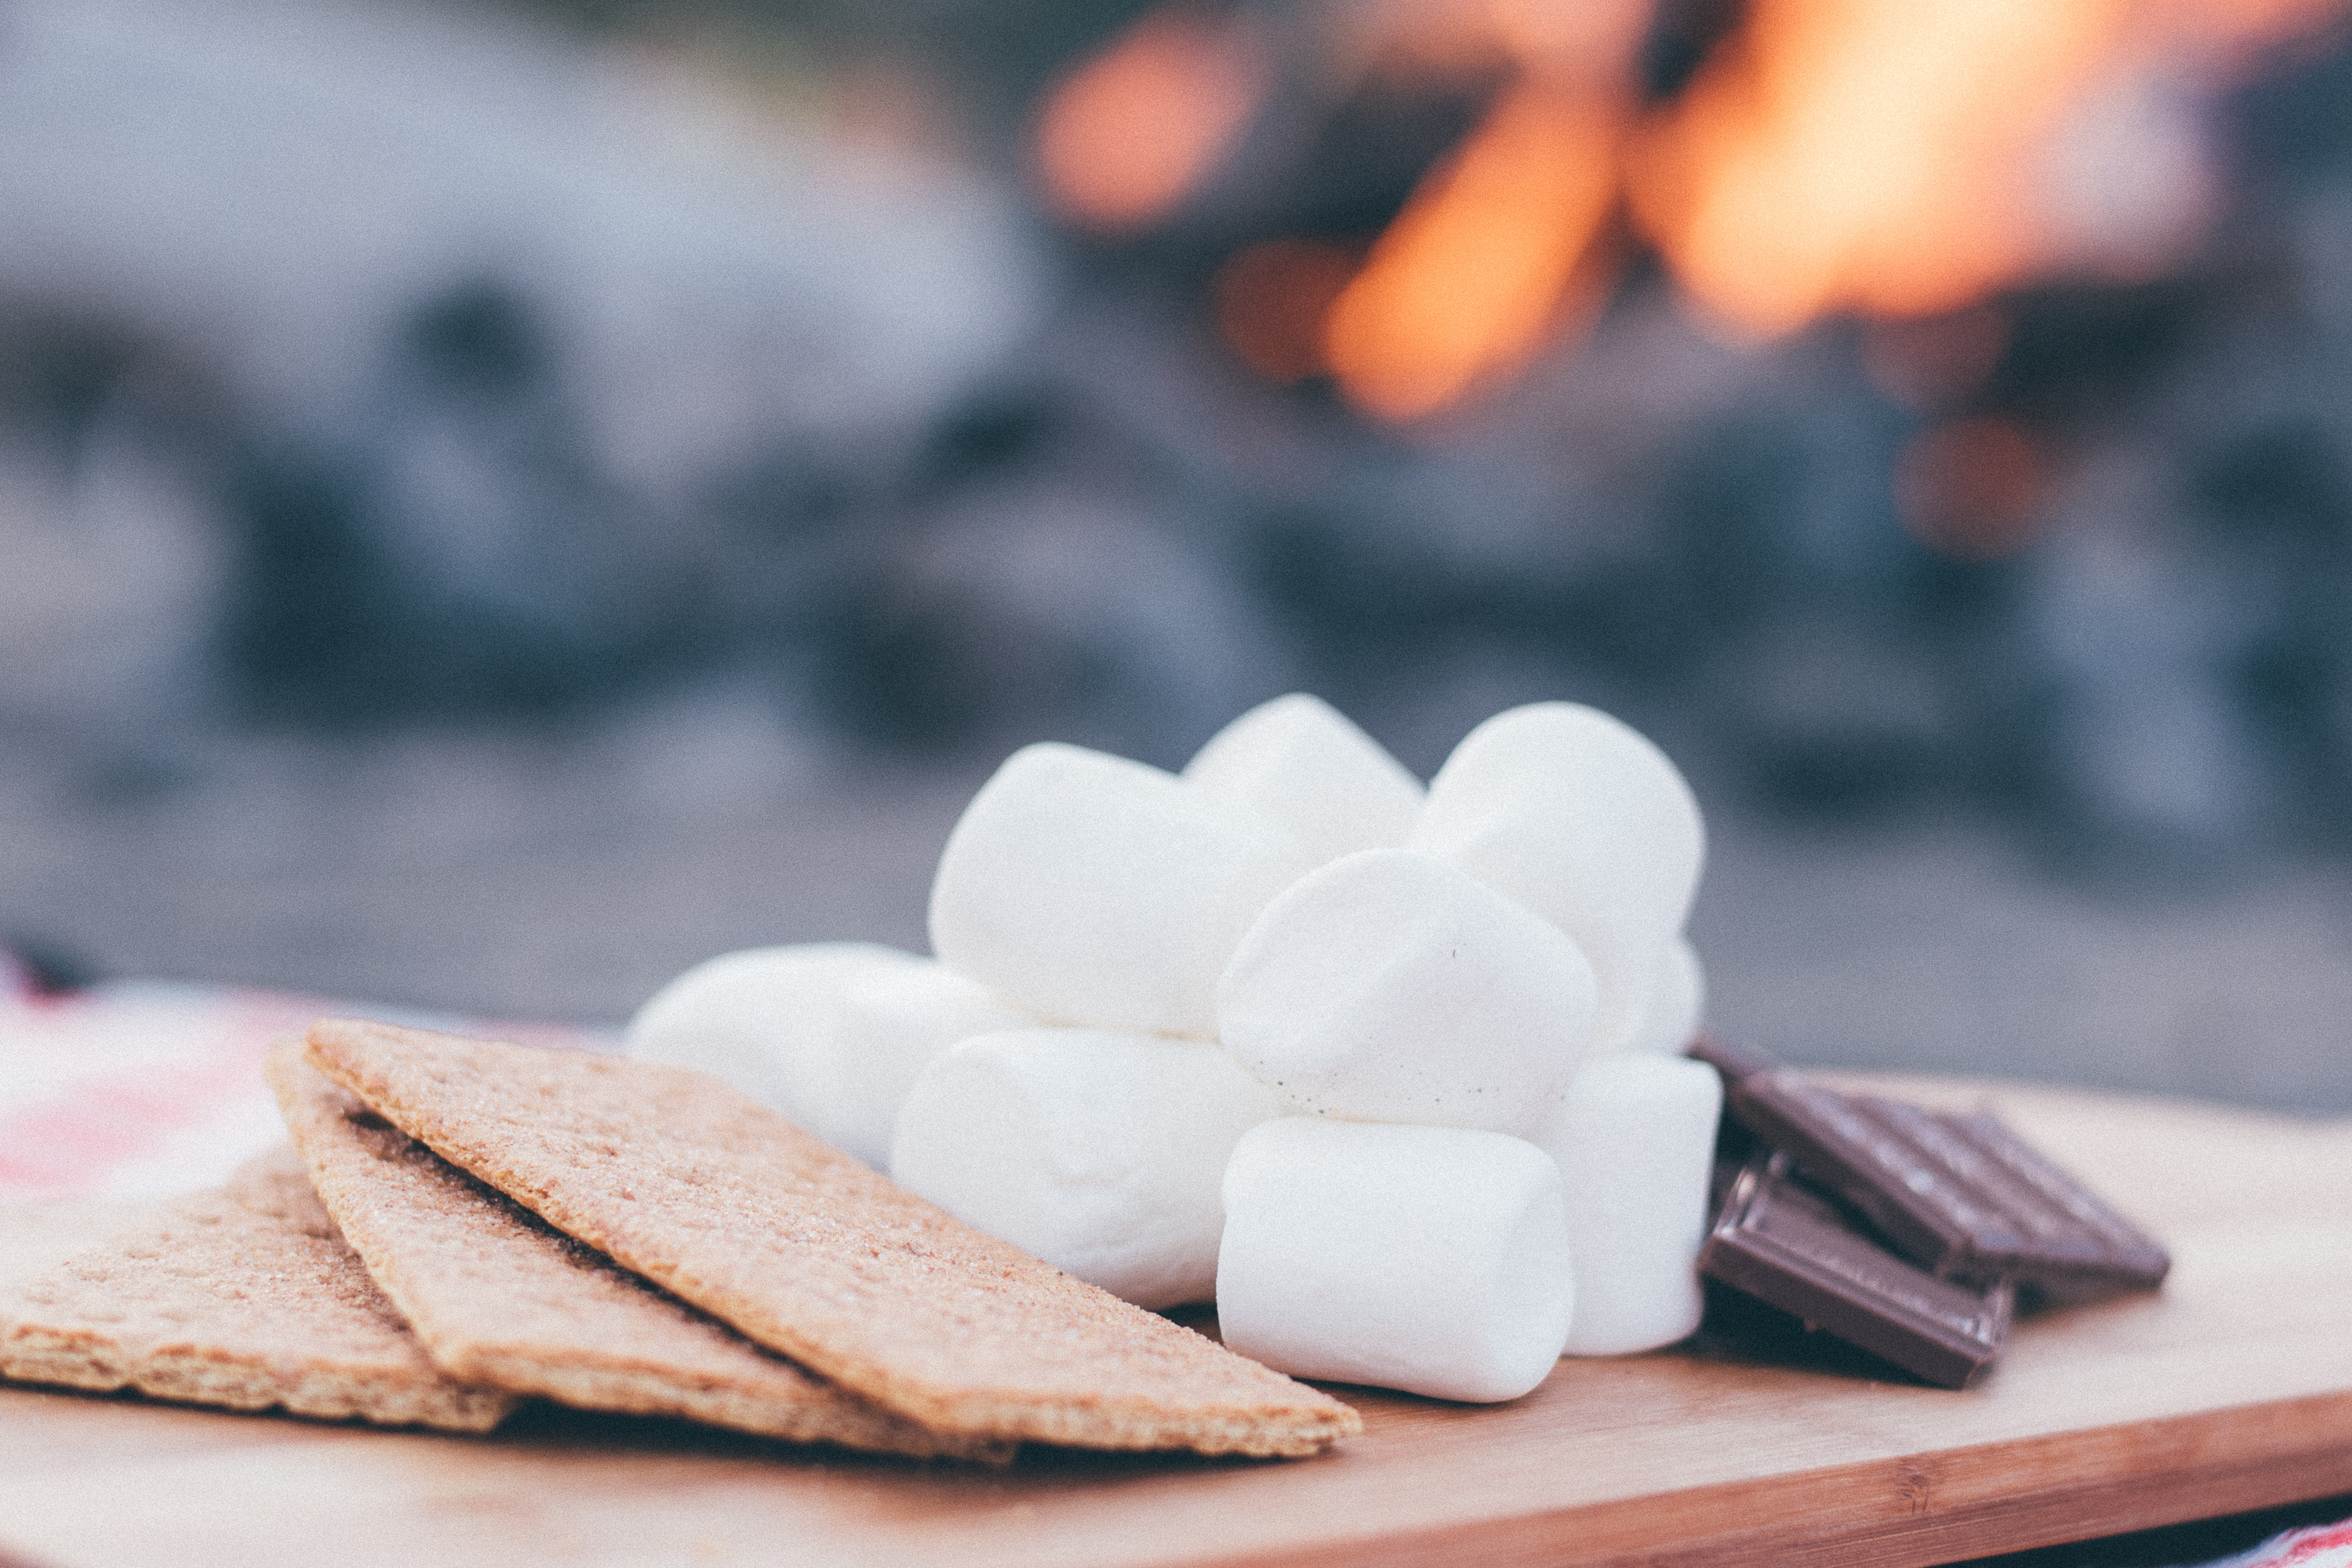 S'mores are a summer favorite for consumers of all ages